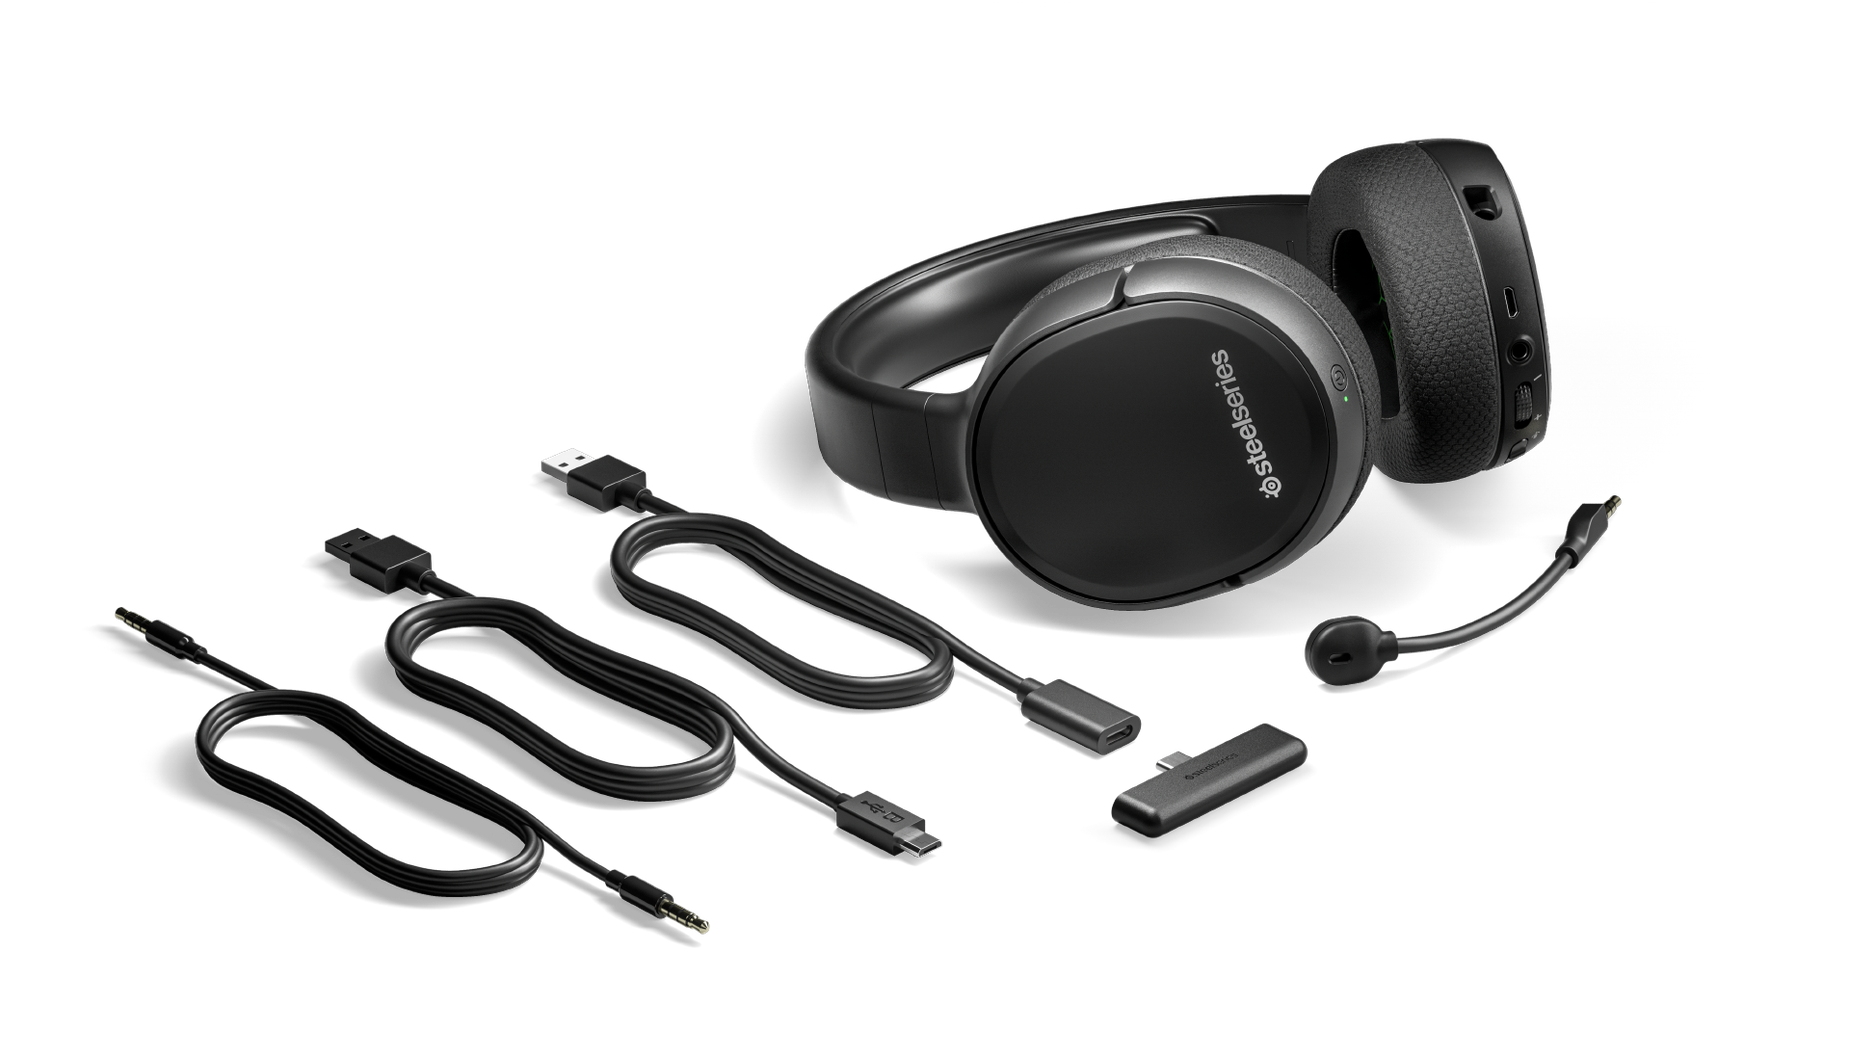 The Arctis 1 Wireless for Xbox gaming headset surrounded by all the box contents including extra cables and the wireless dongle